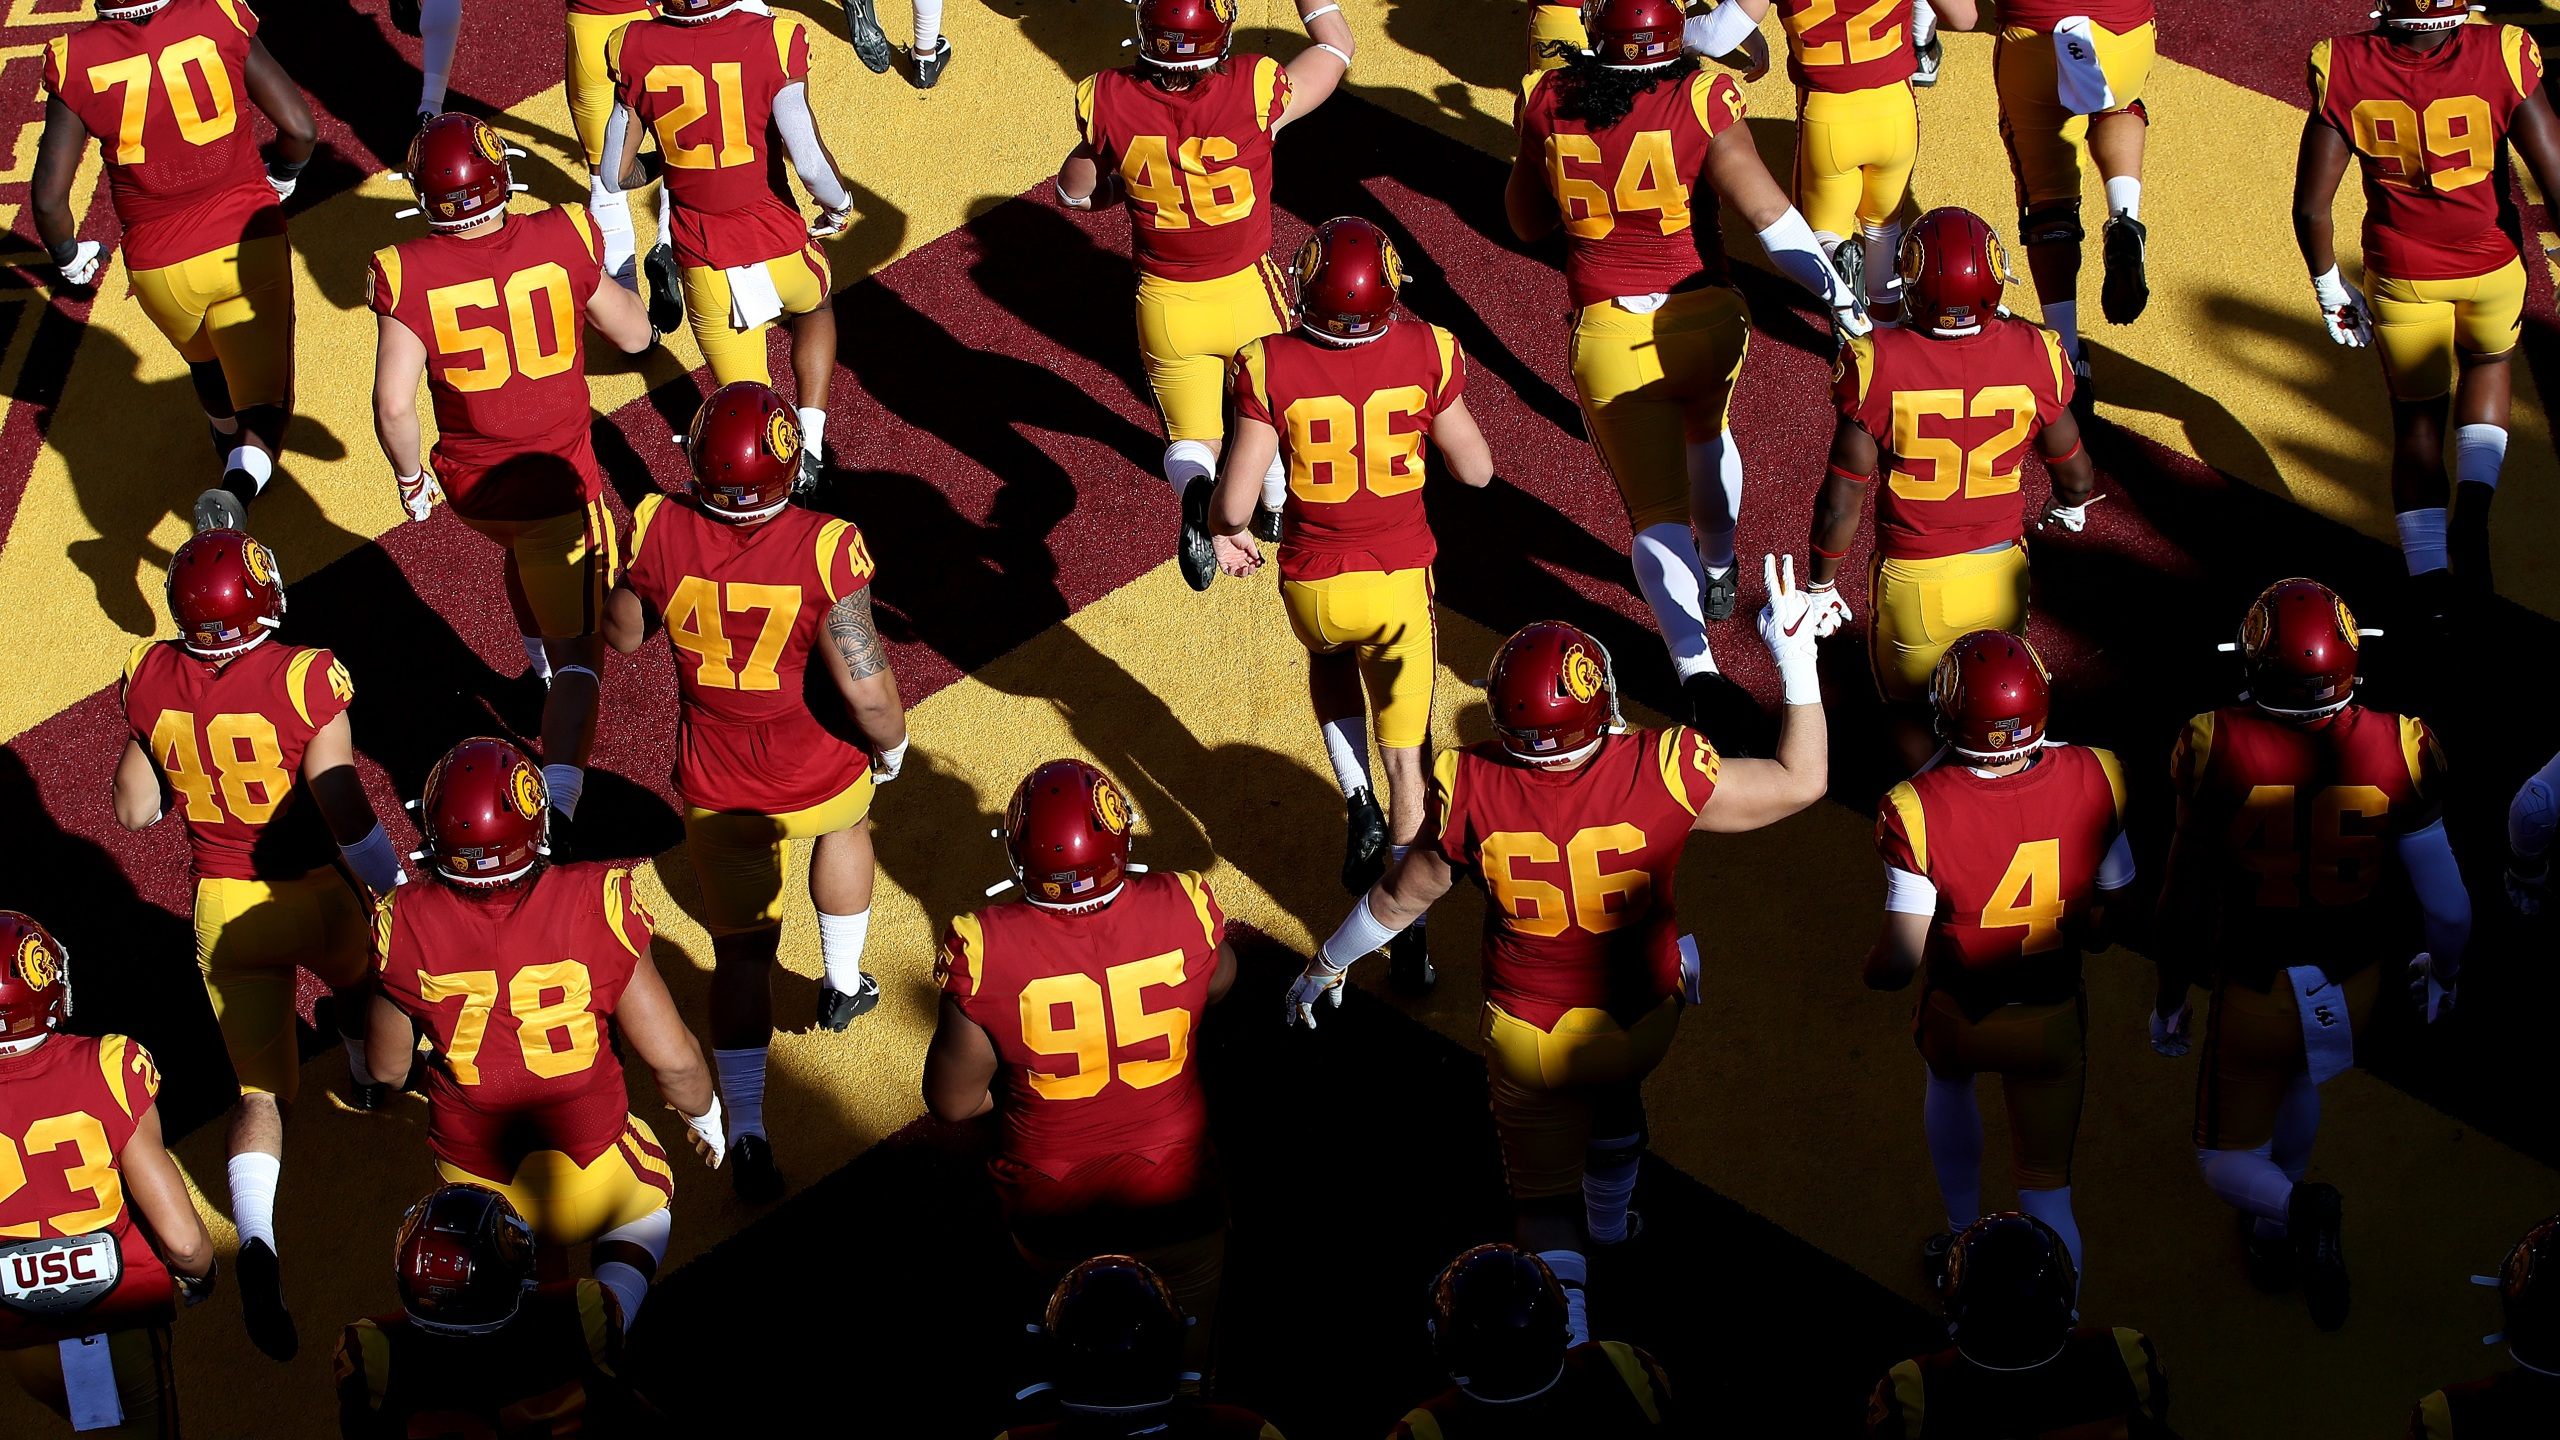 The USC Trojans run onto the field prior to a game against the UCLA Bruins at Los Angeles Memorial Coliseum on Nov. 23, 2019, in Los Angeles. (Sean M. Haffey/Getty Images)